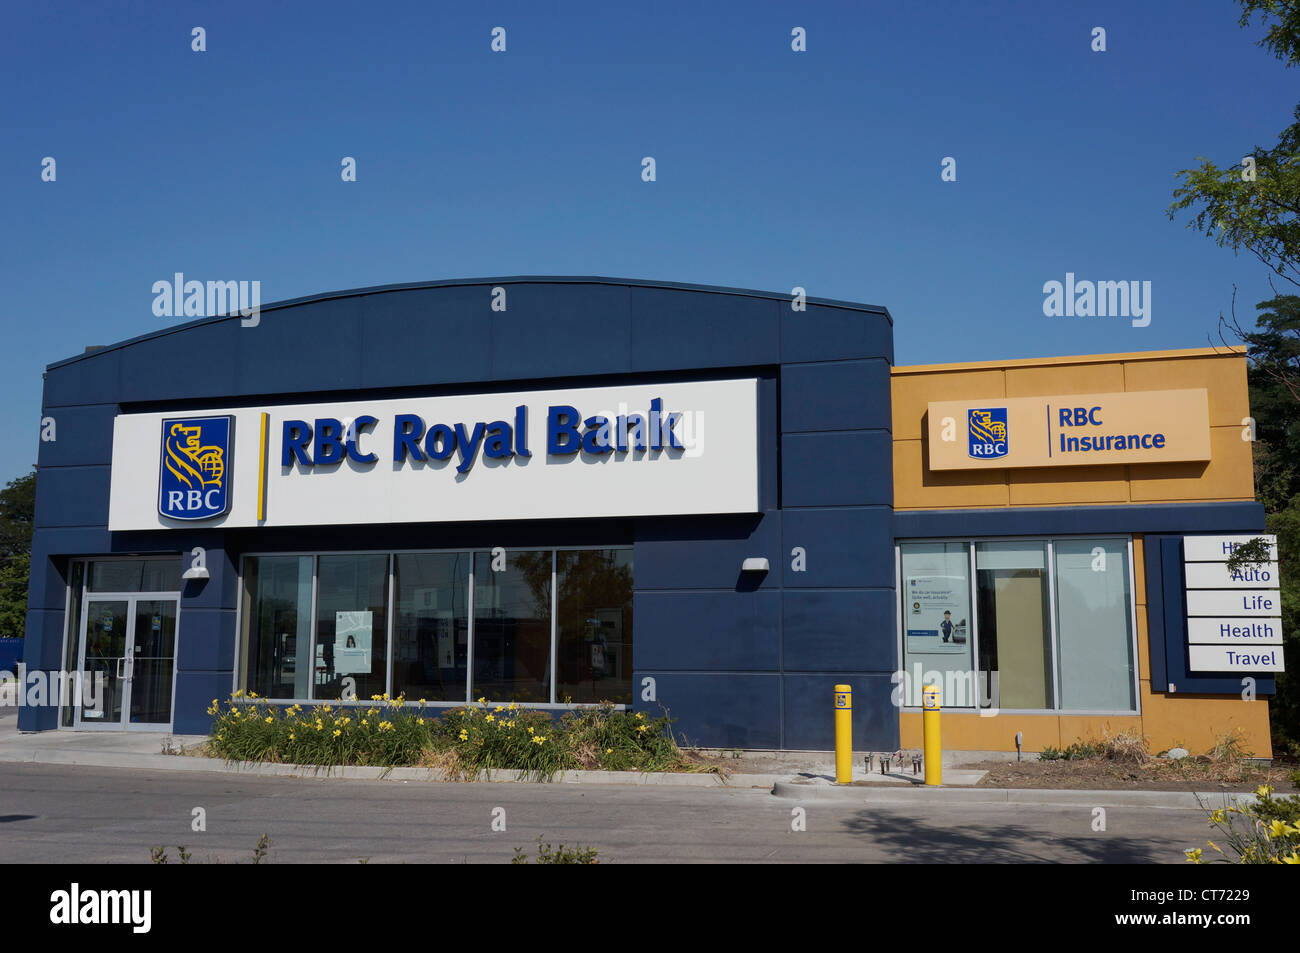 Succursale Banque Royale du Canada Photo Stock